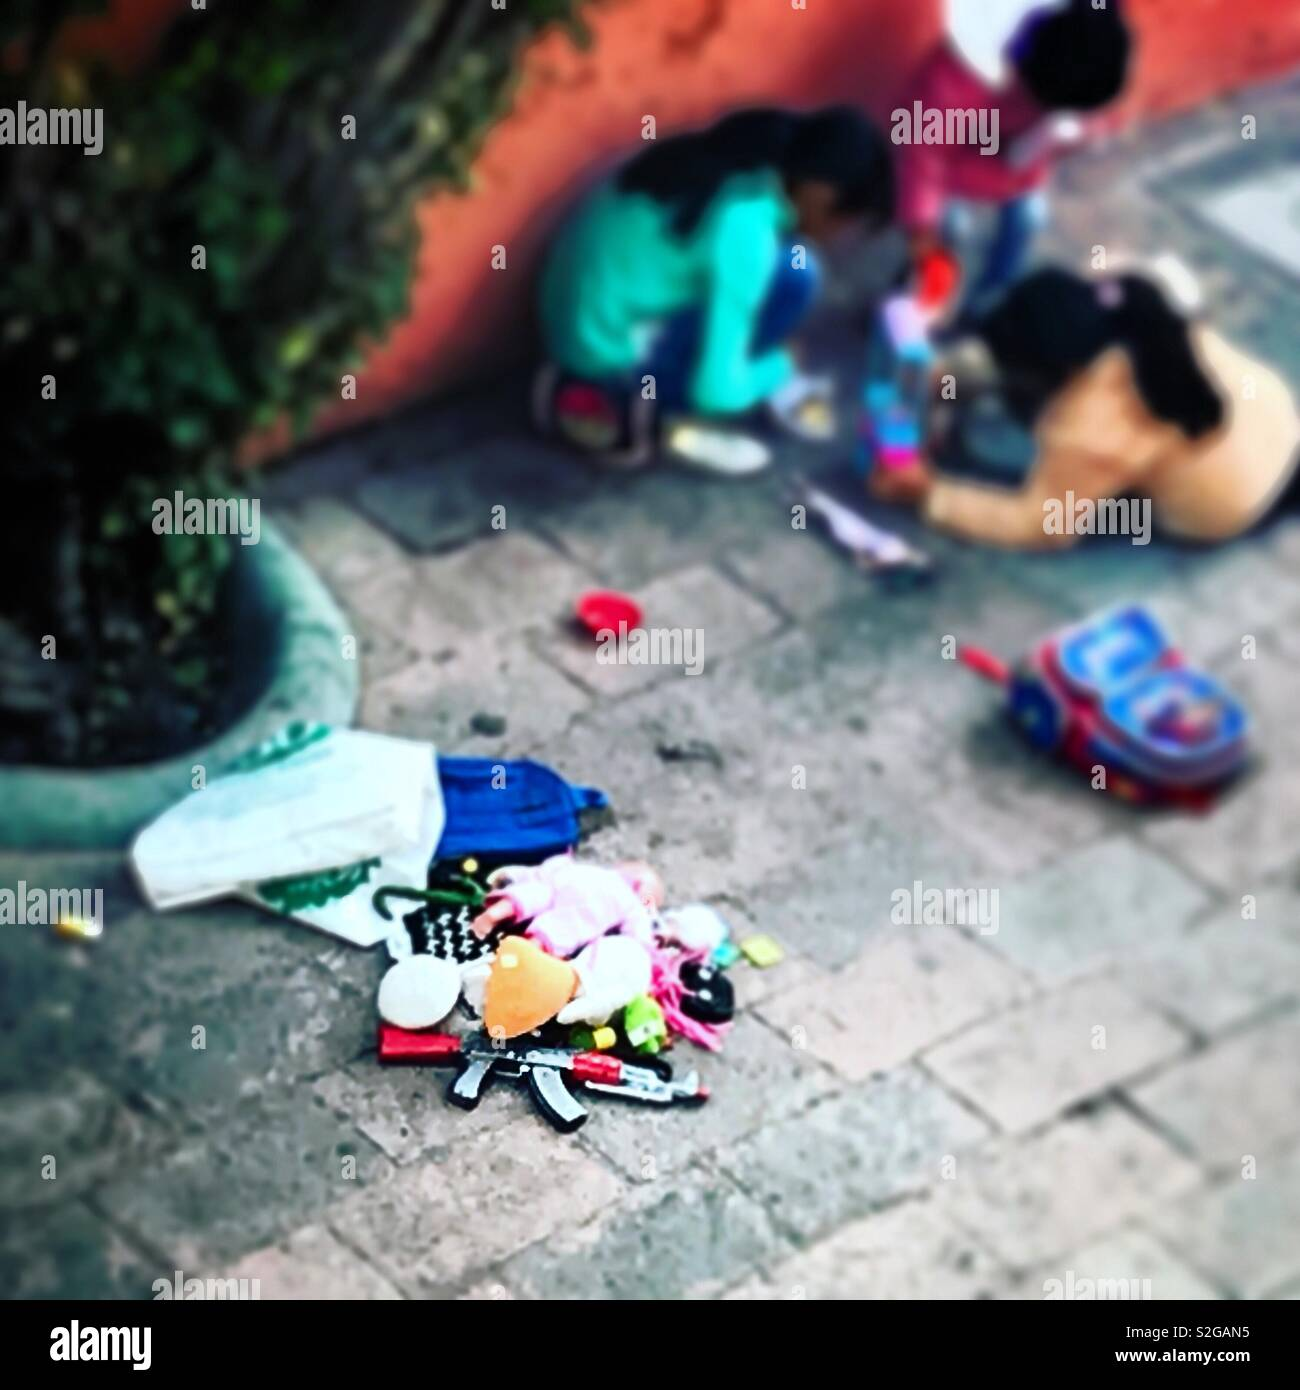 Children play with toys near a toy machine gun in Tequisquiapan, Queretaro, Mexico - Stock Image